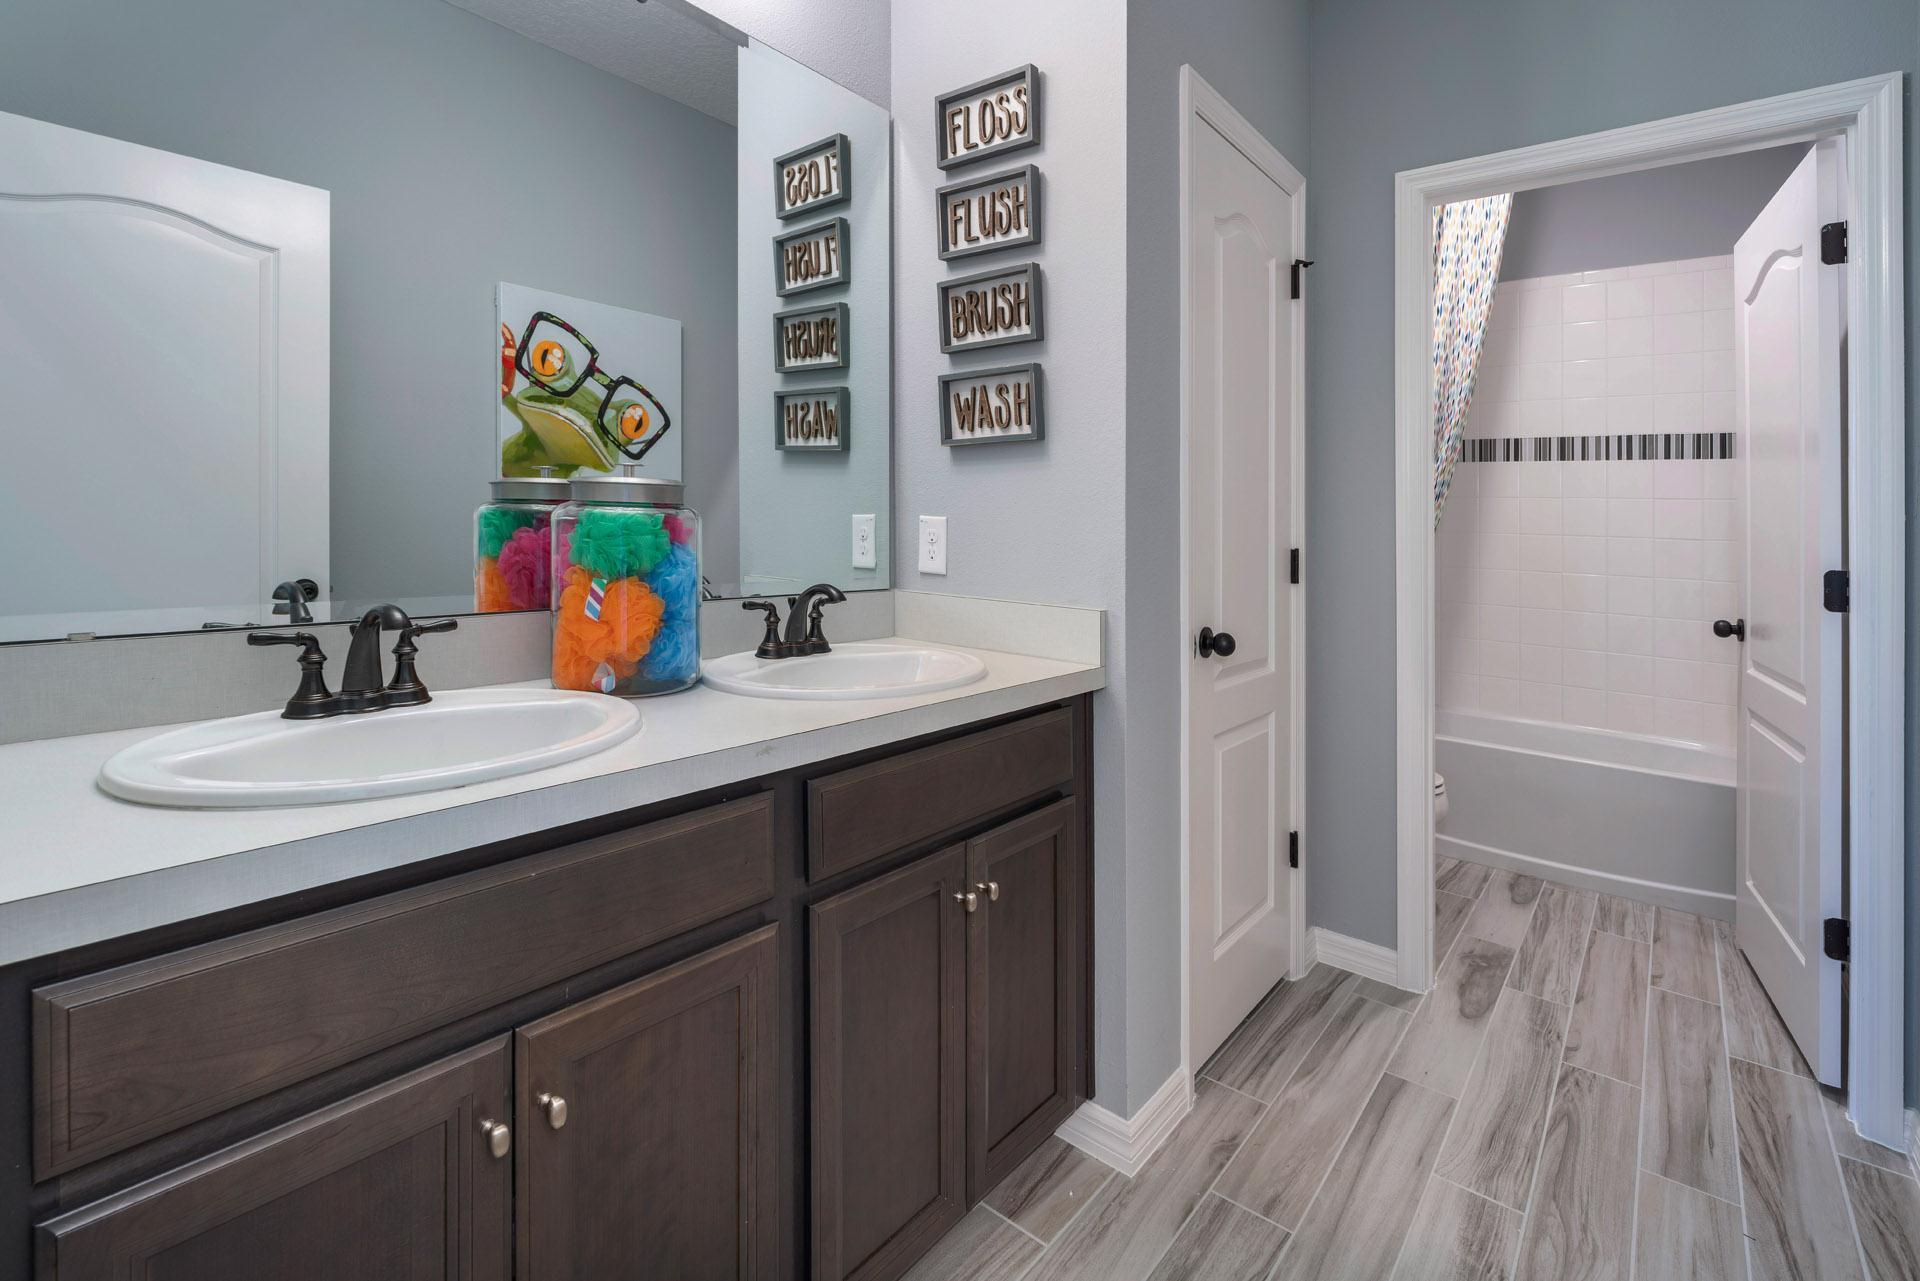 Bathroom featured in the Delano By Hanover Family Builders in Lakeland-Winter Haven, FL